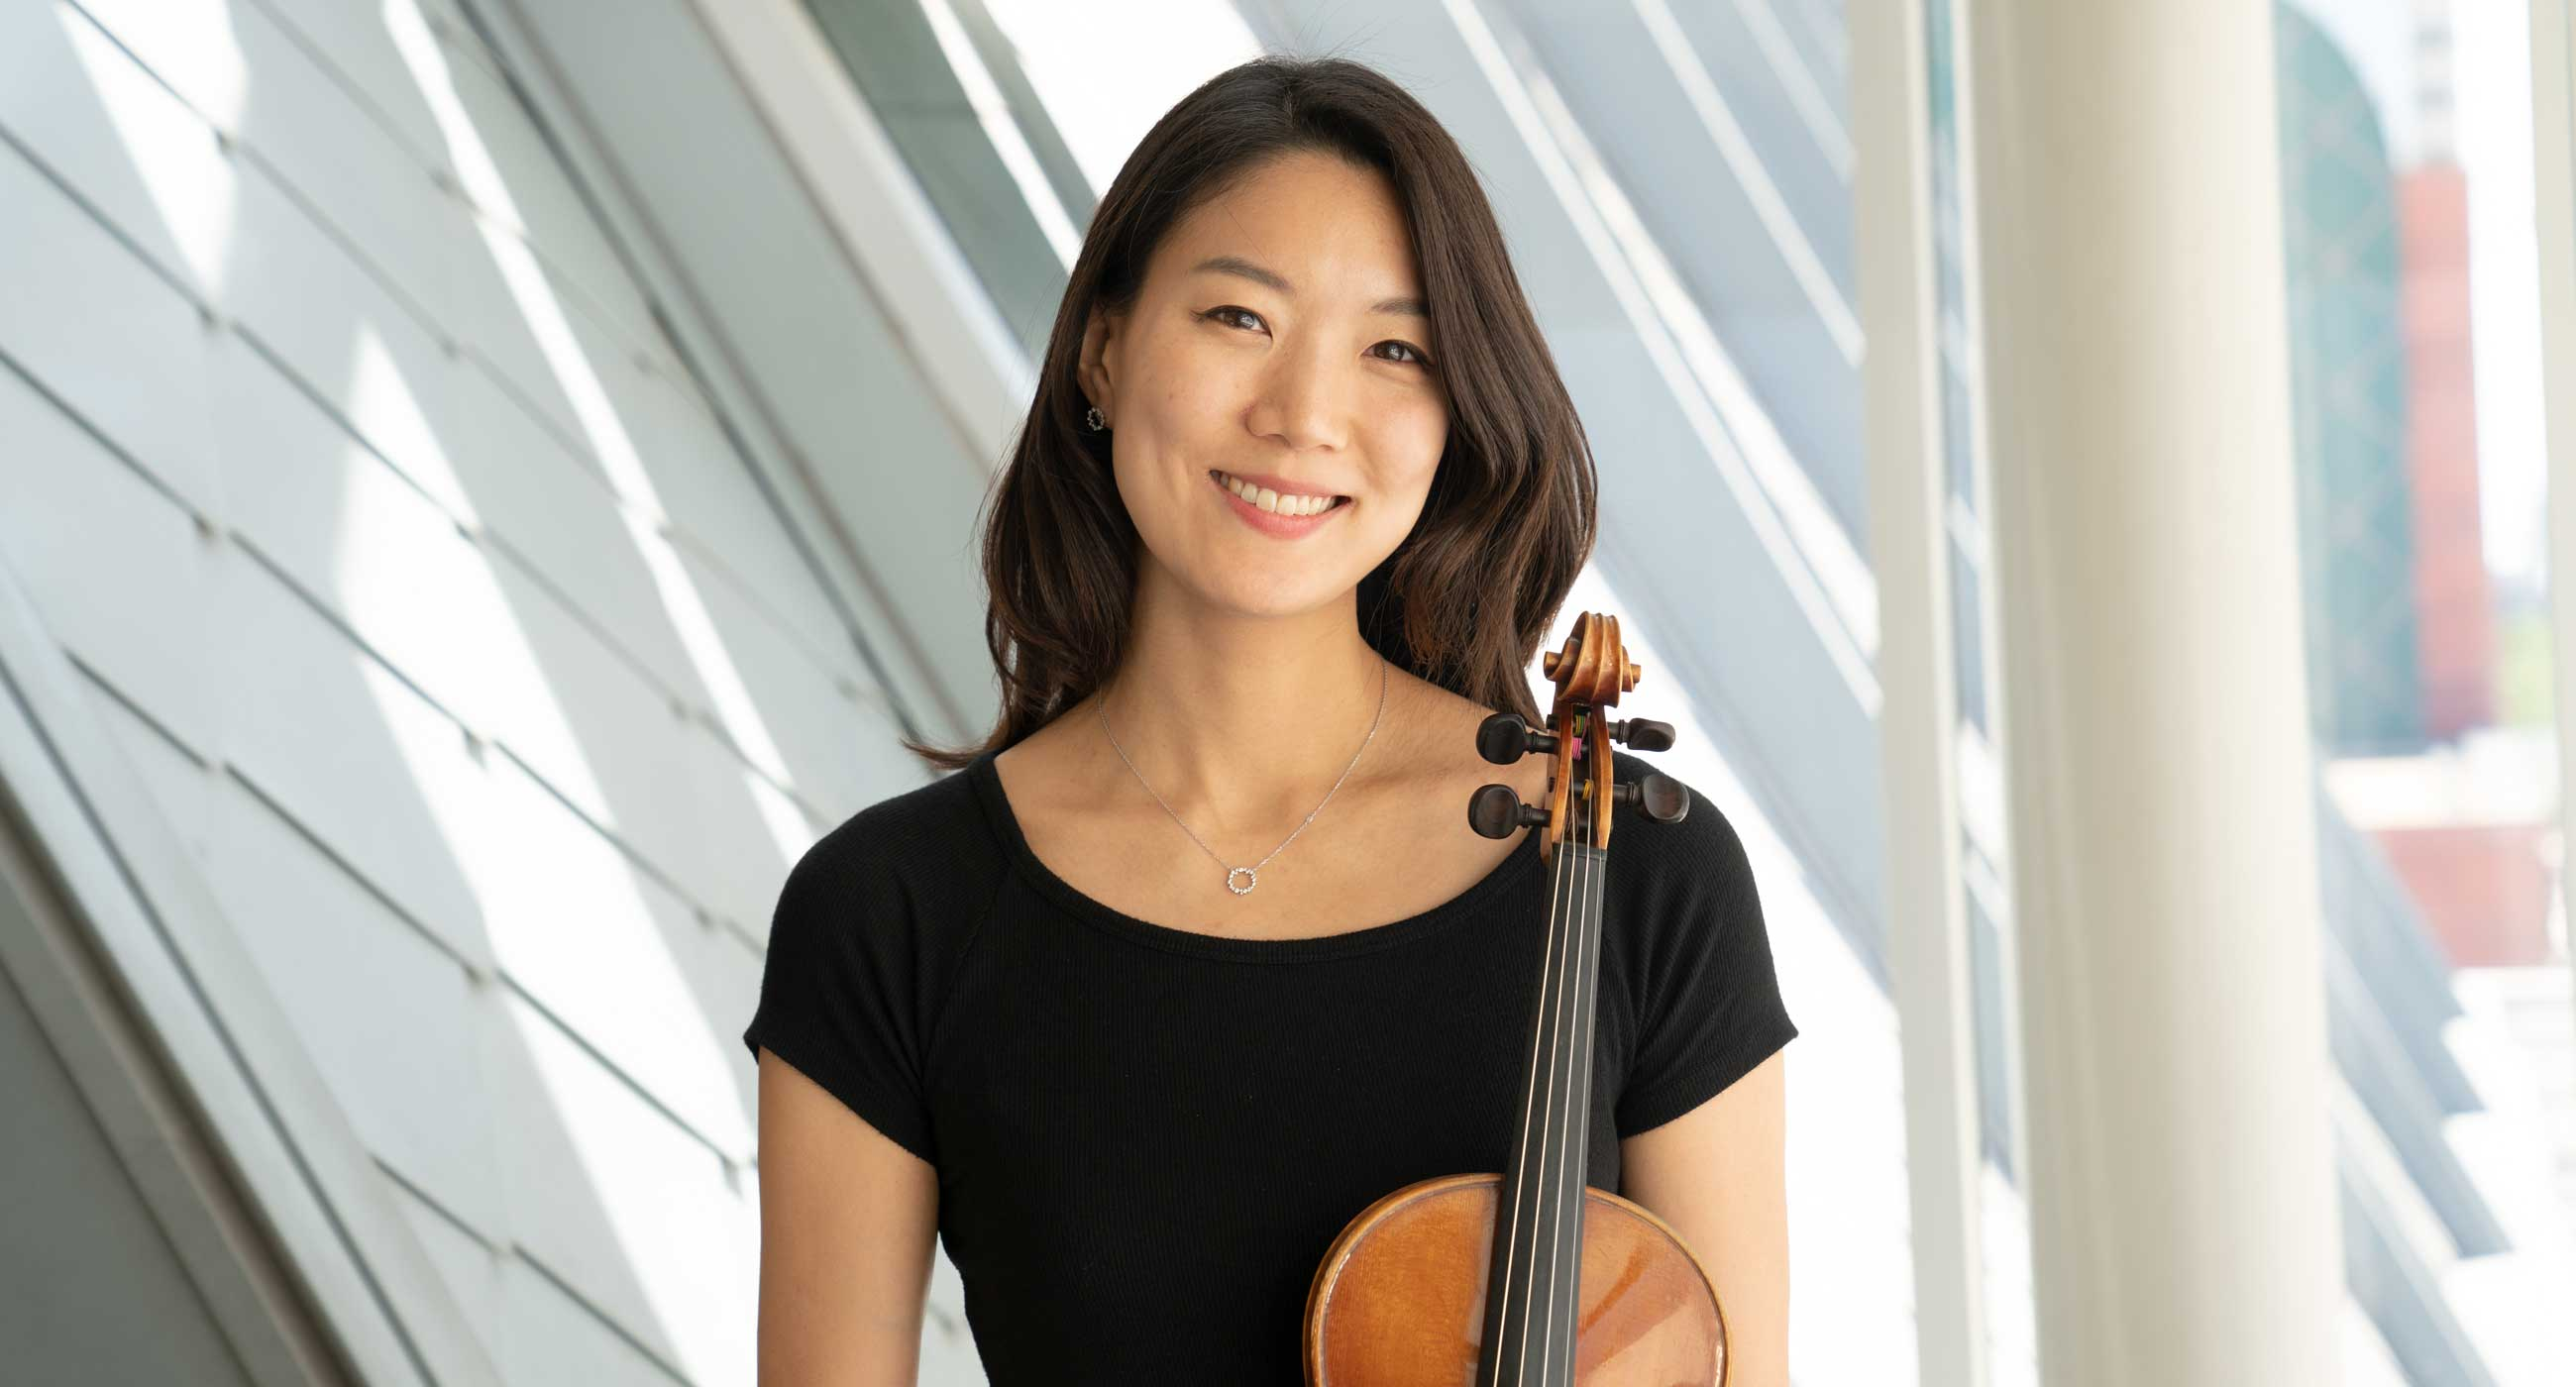 Joanna Lee holding a violin and smiling in front of a window.